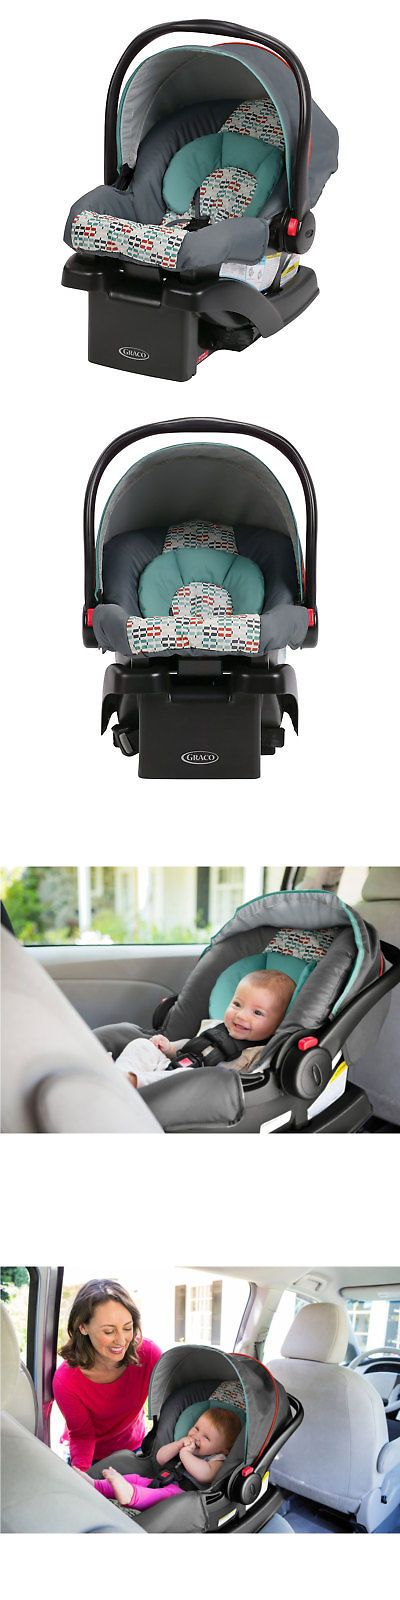 Infant Car Seat 5 20 Lbs 66696 Graco Snugride Click Connect 30 4 Lb Baby Adjustable Barlow BUY IT NOW ONLY 11599 On EBay